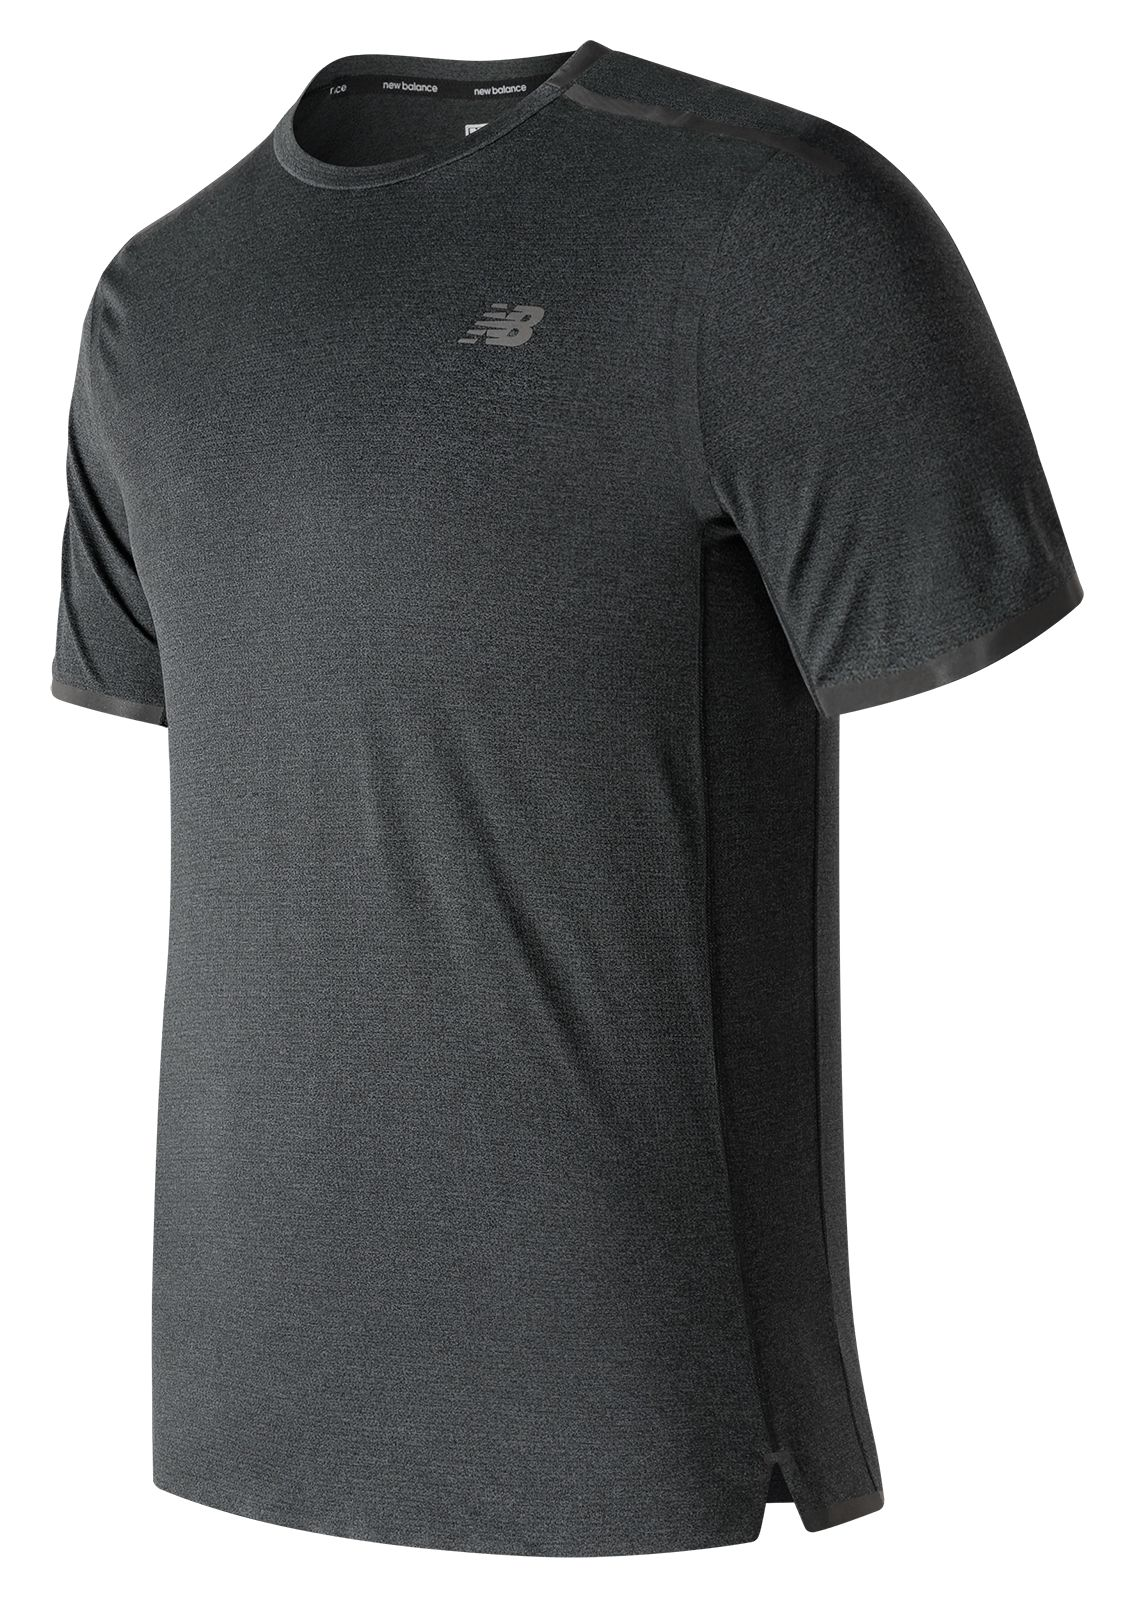 Precision Run Short Sleeve